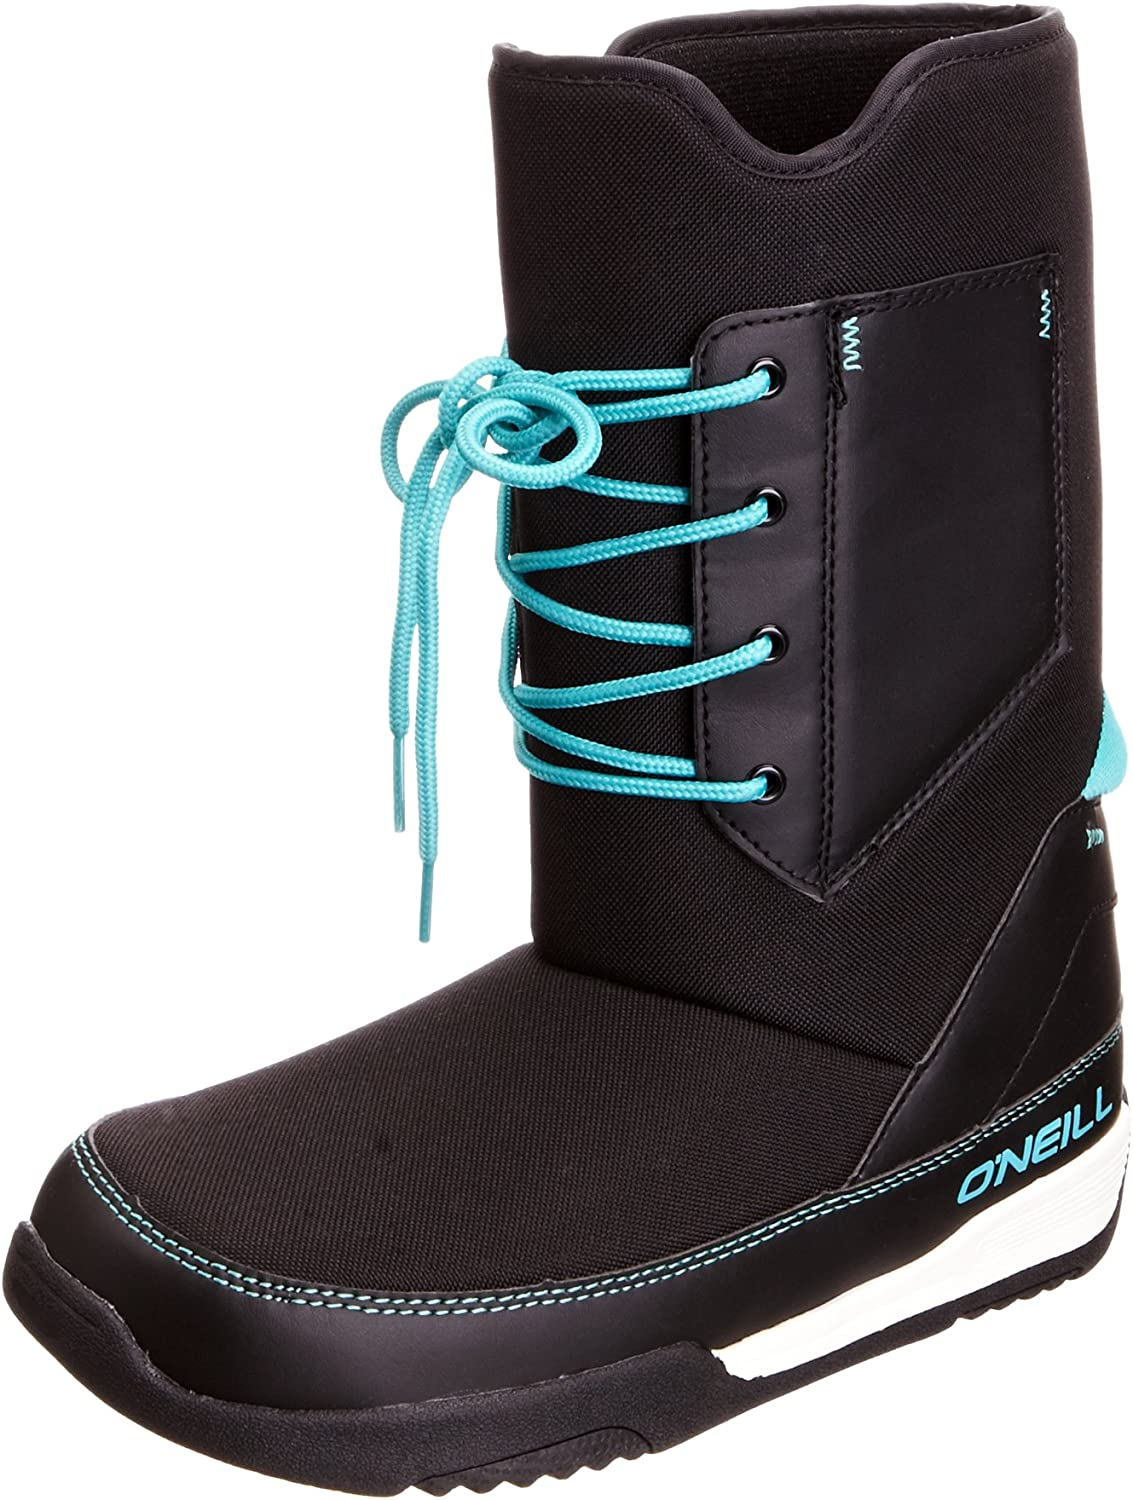 O'NEILL Men's Boots Max 90% Super beauty product restock quality top! OFF Snow